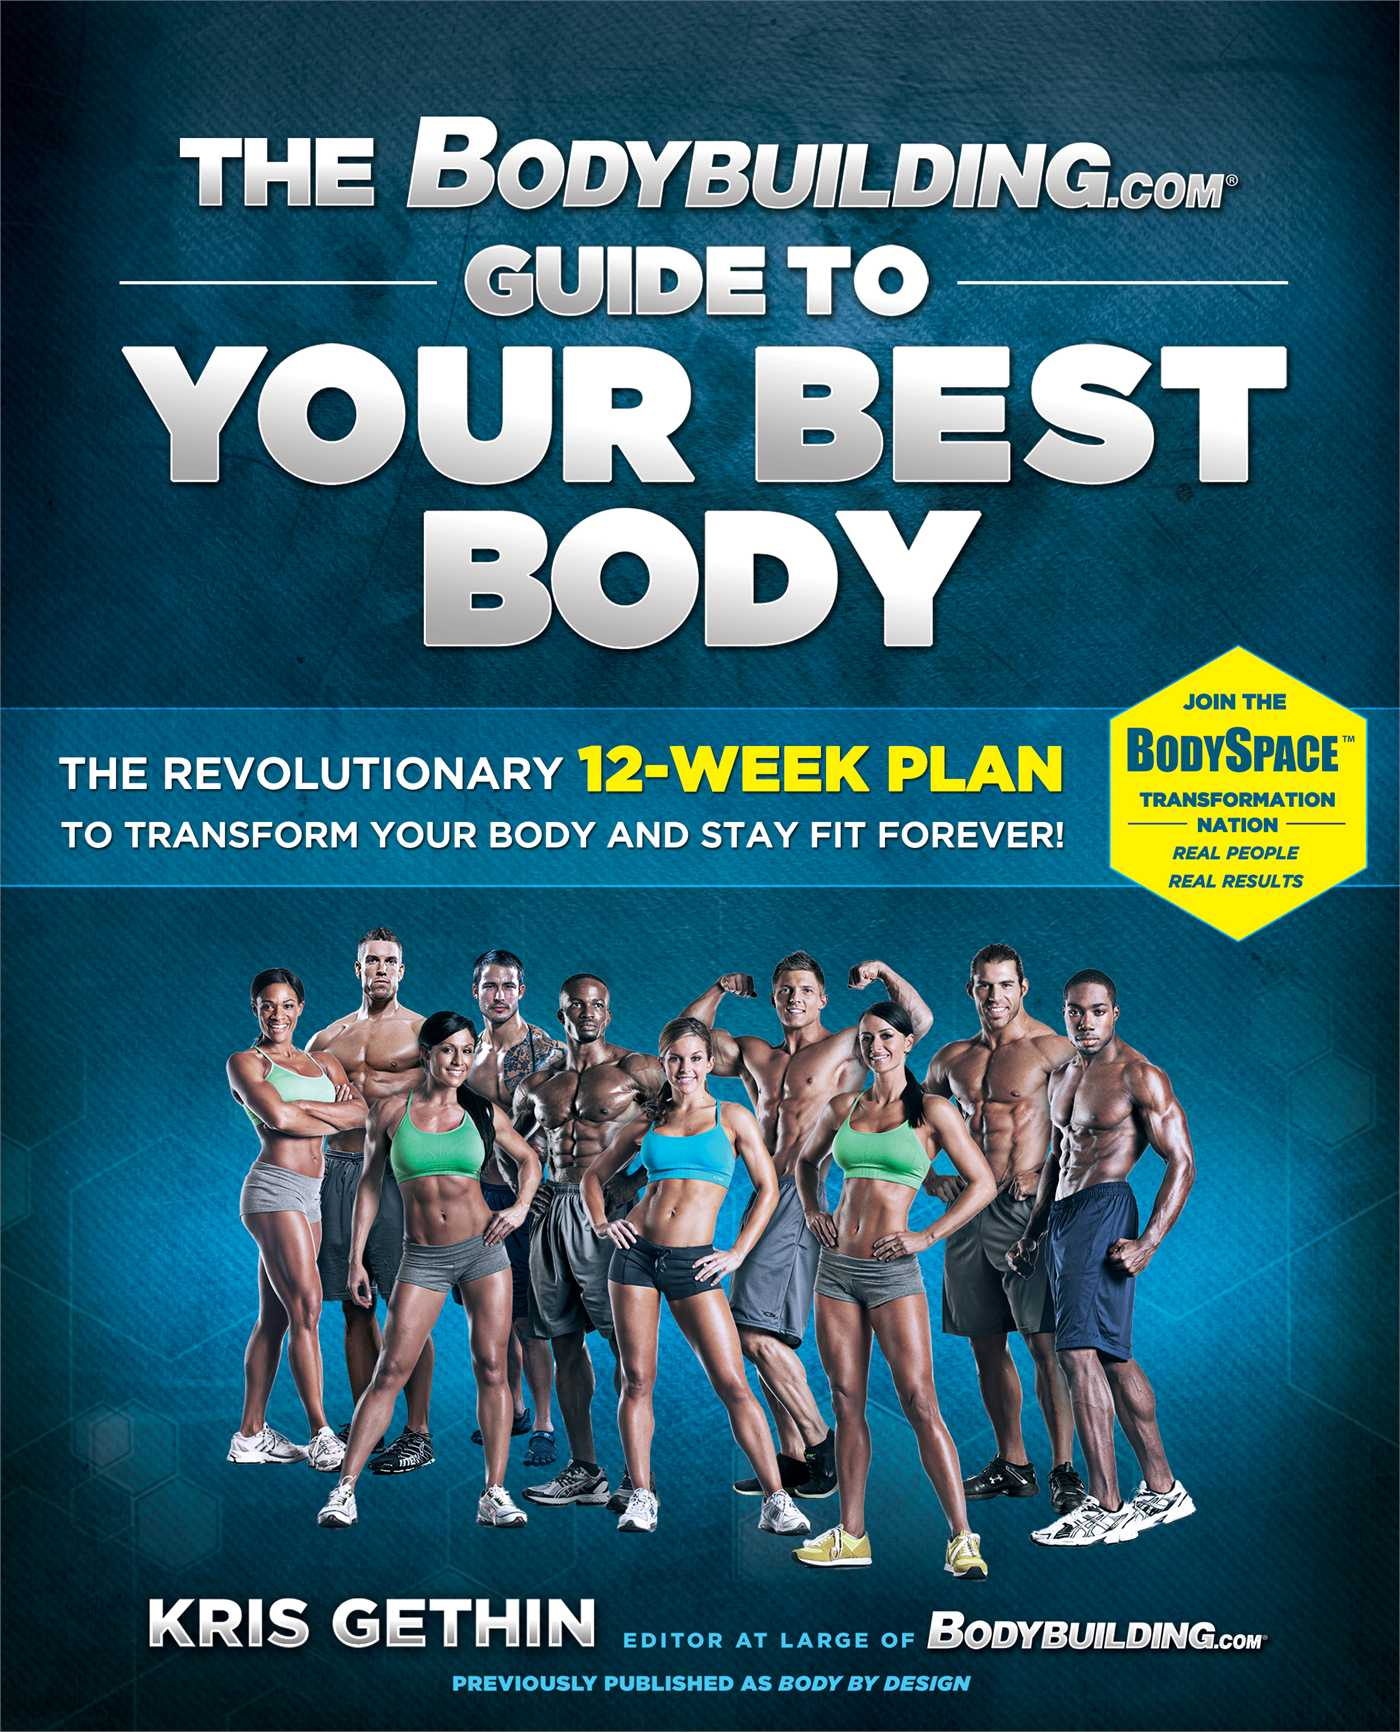 the bodybuilding com guide to your best body book by kris gethin